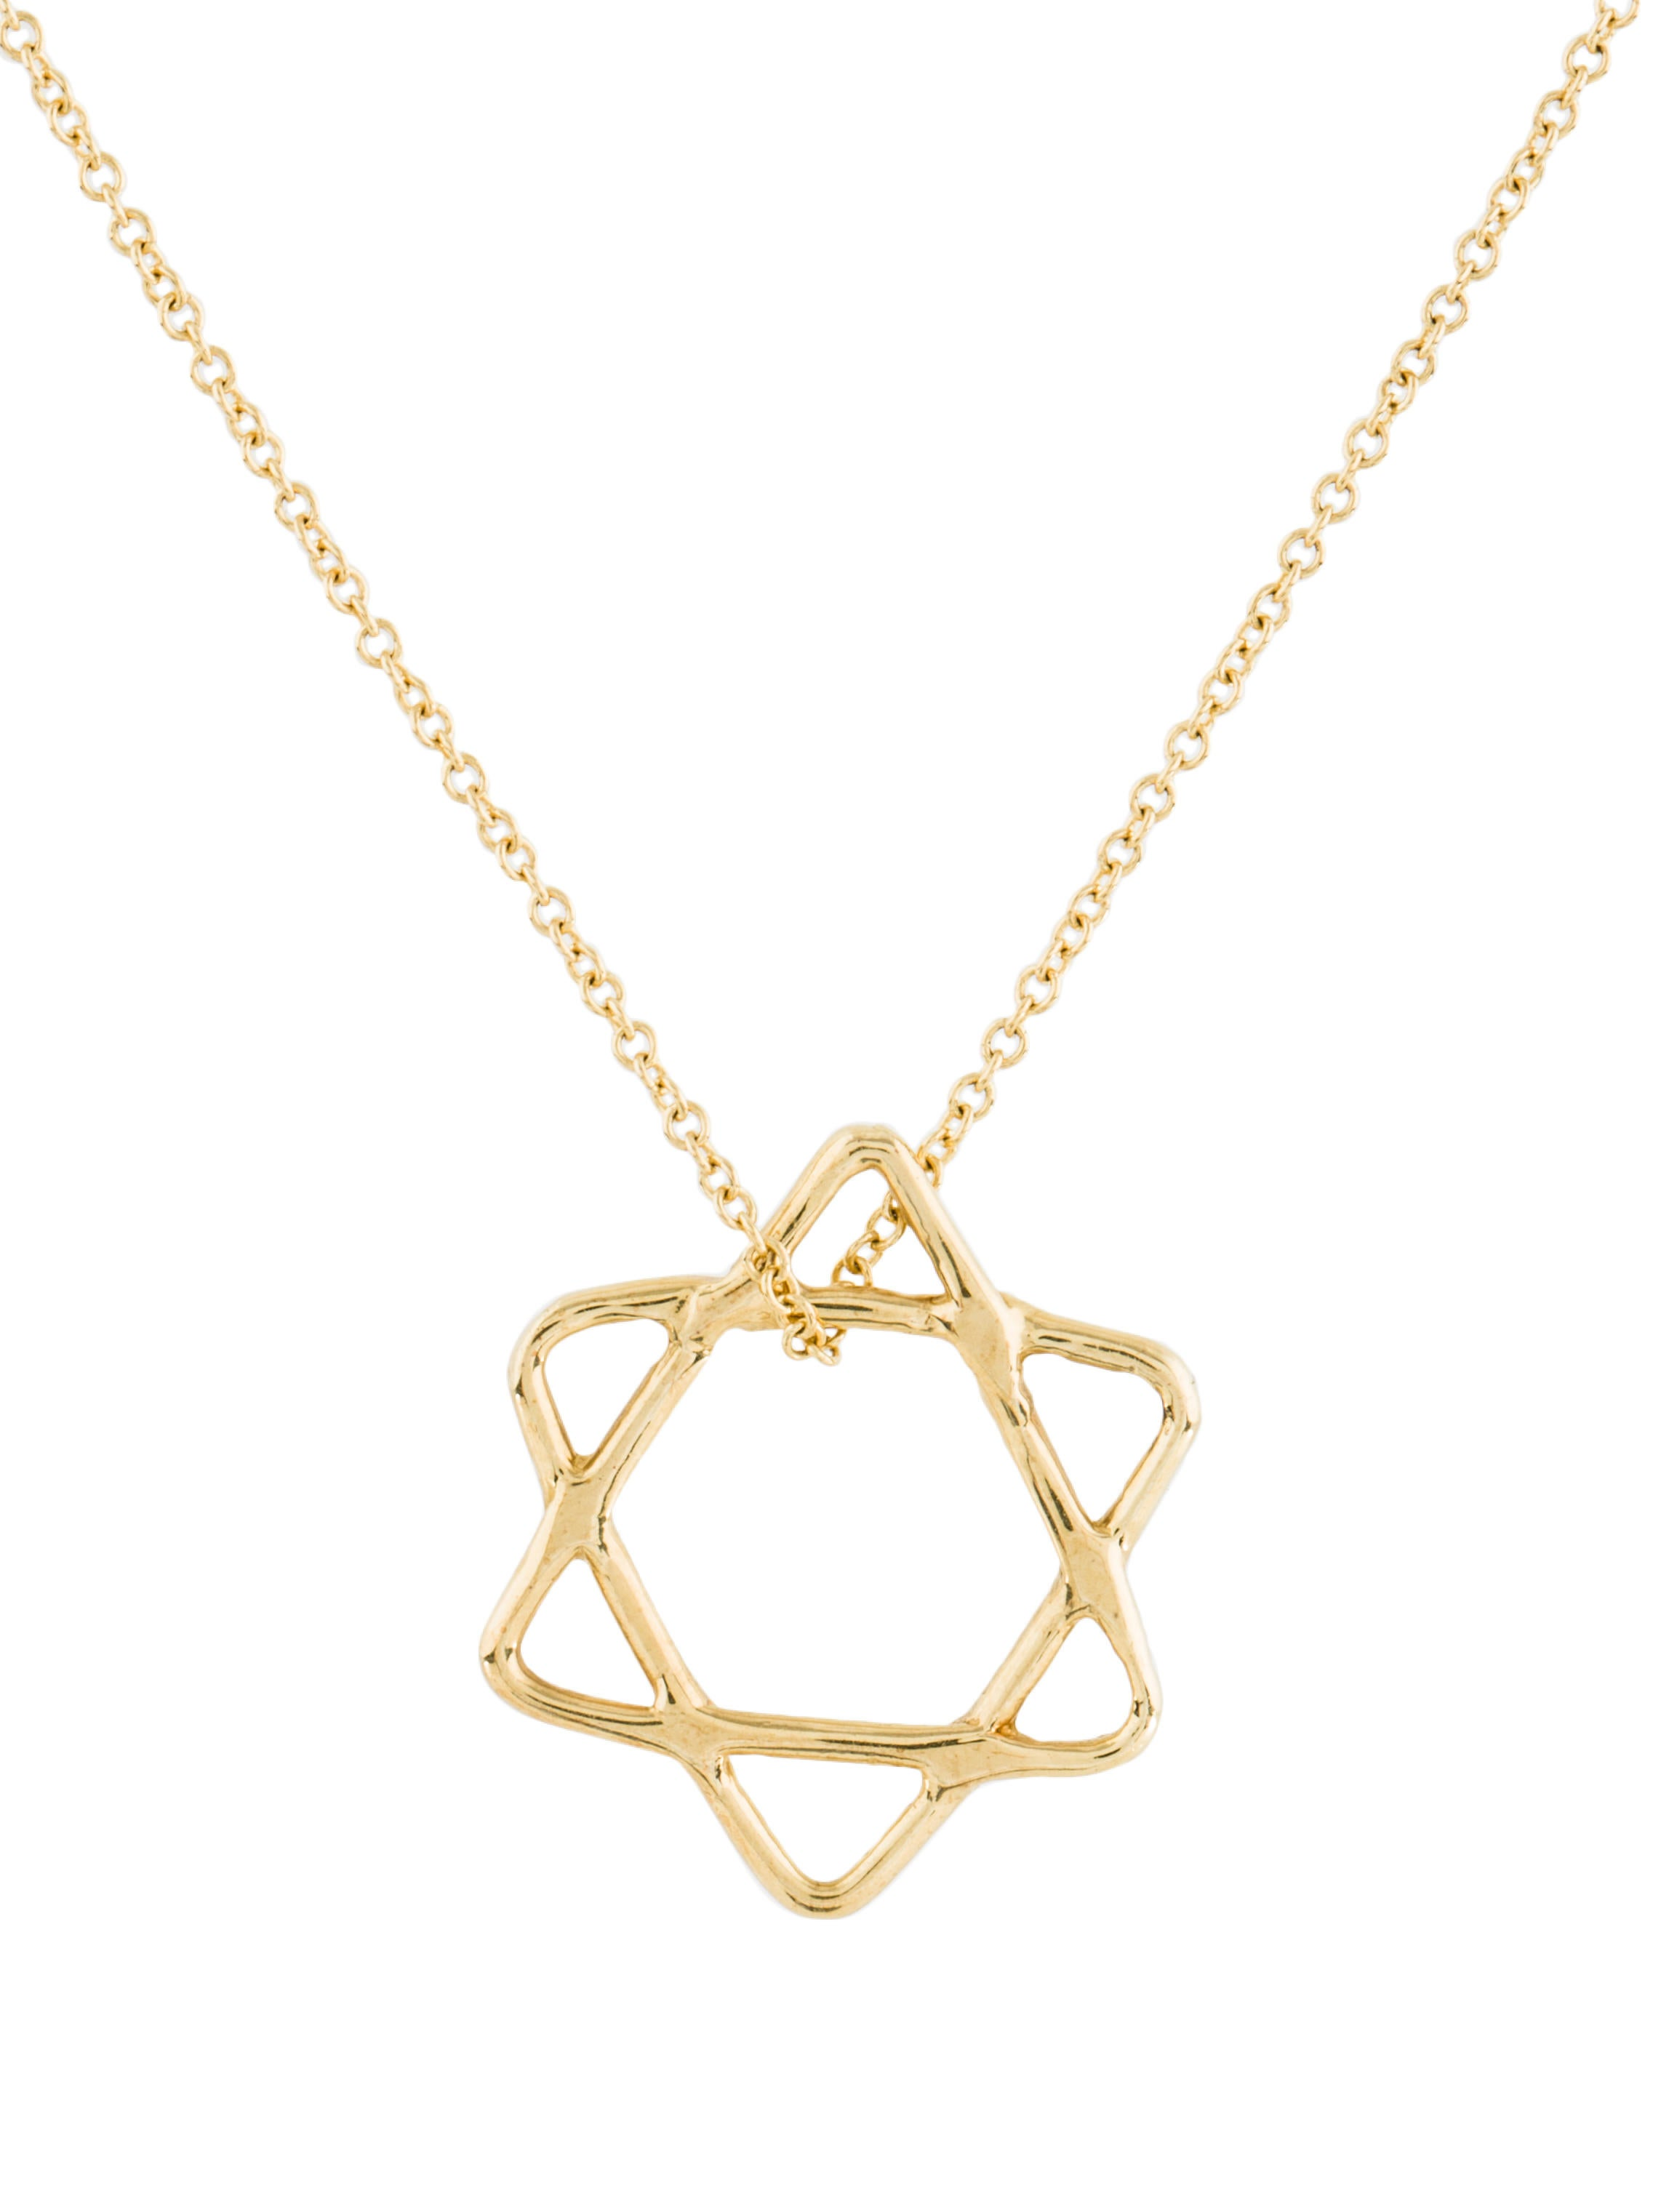 14k star of david pendant necklace necklaces for Star of david jewelry wholesale